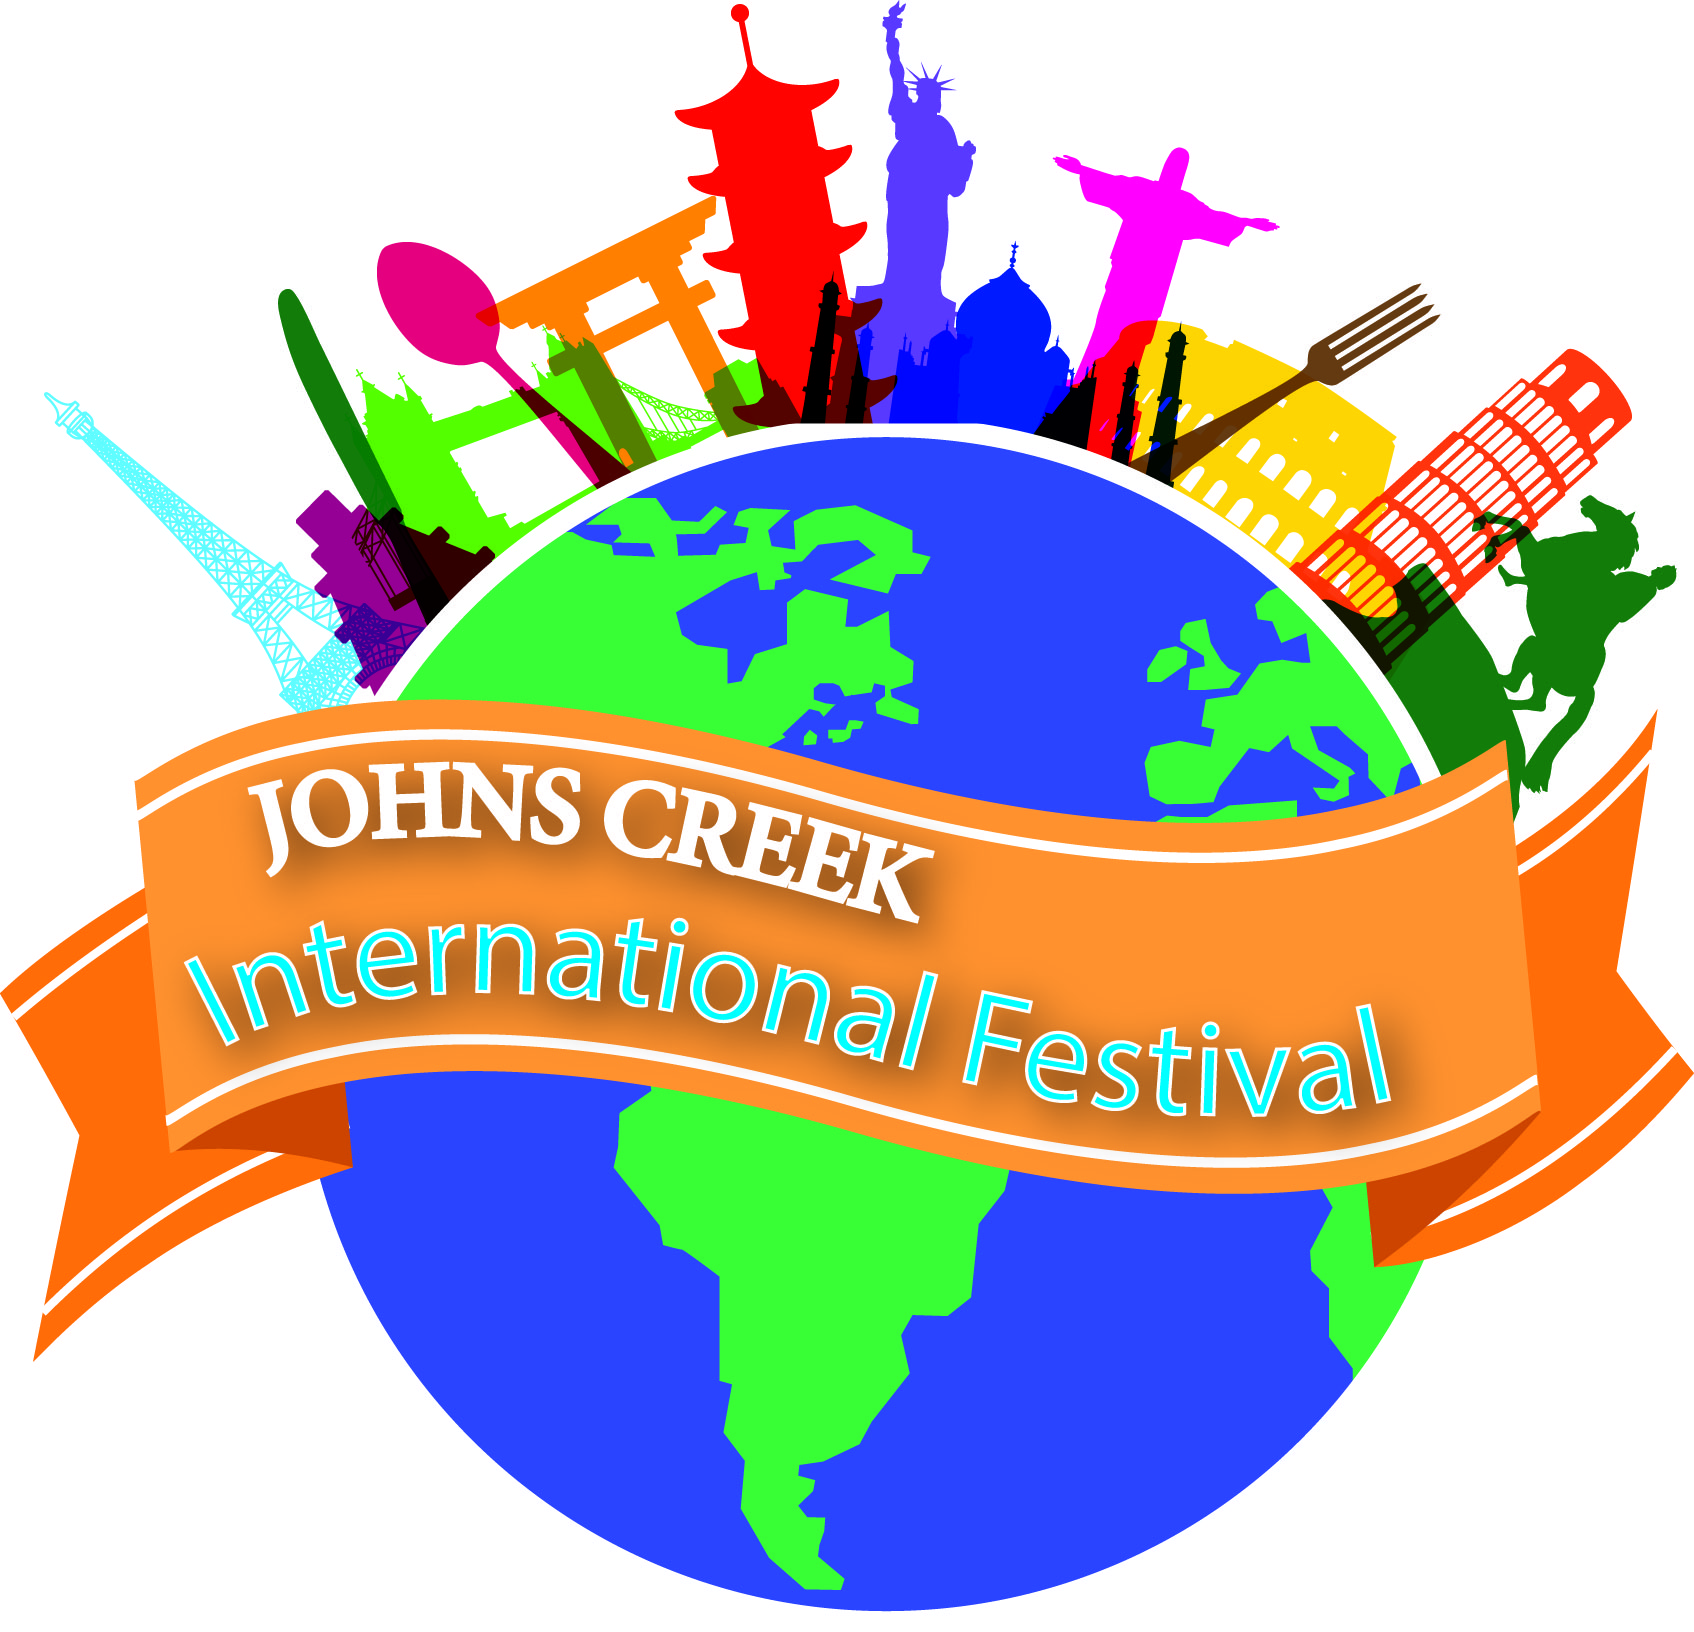 New International Festival coming to Johns Creek